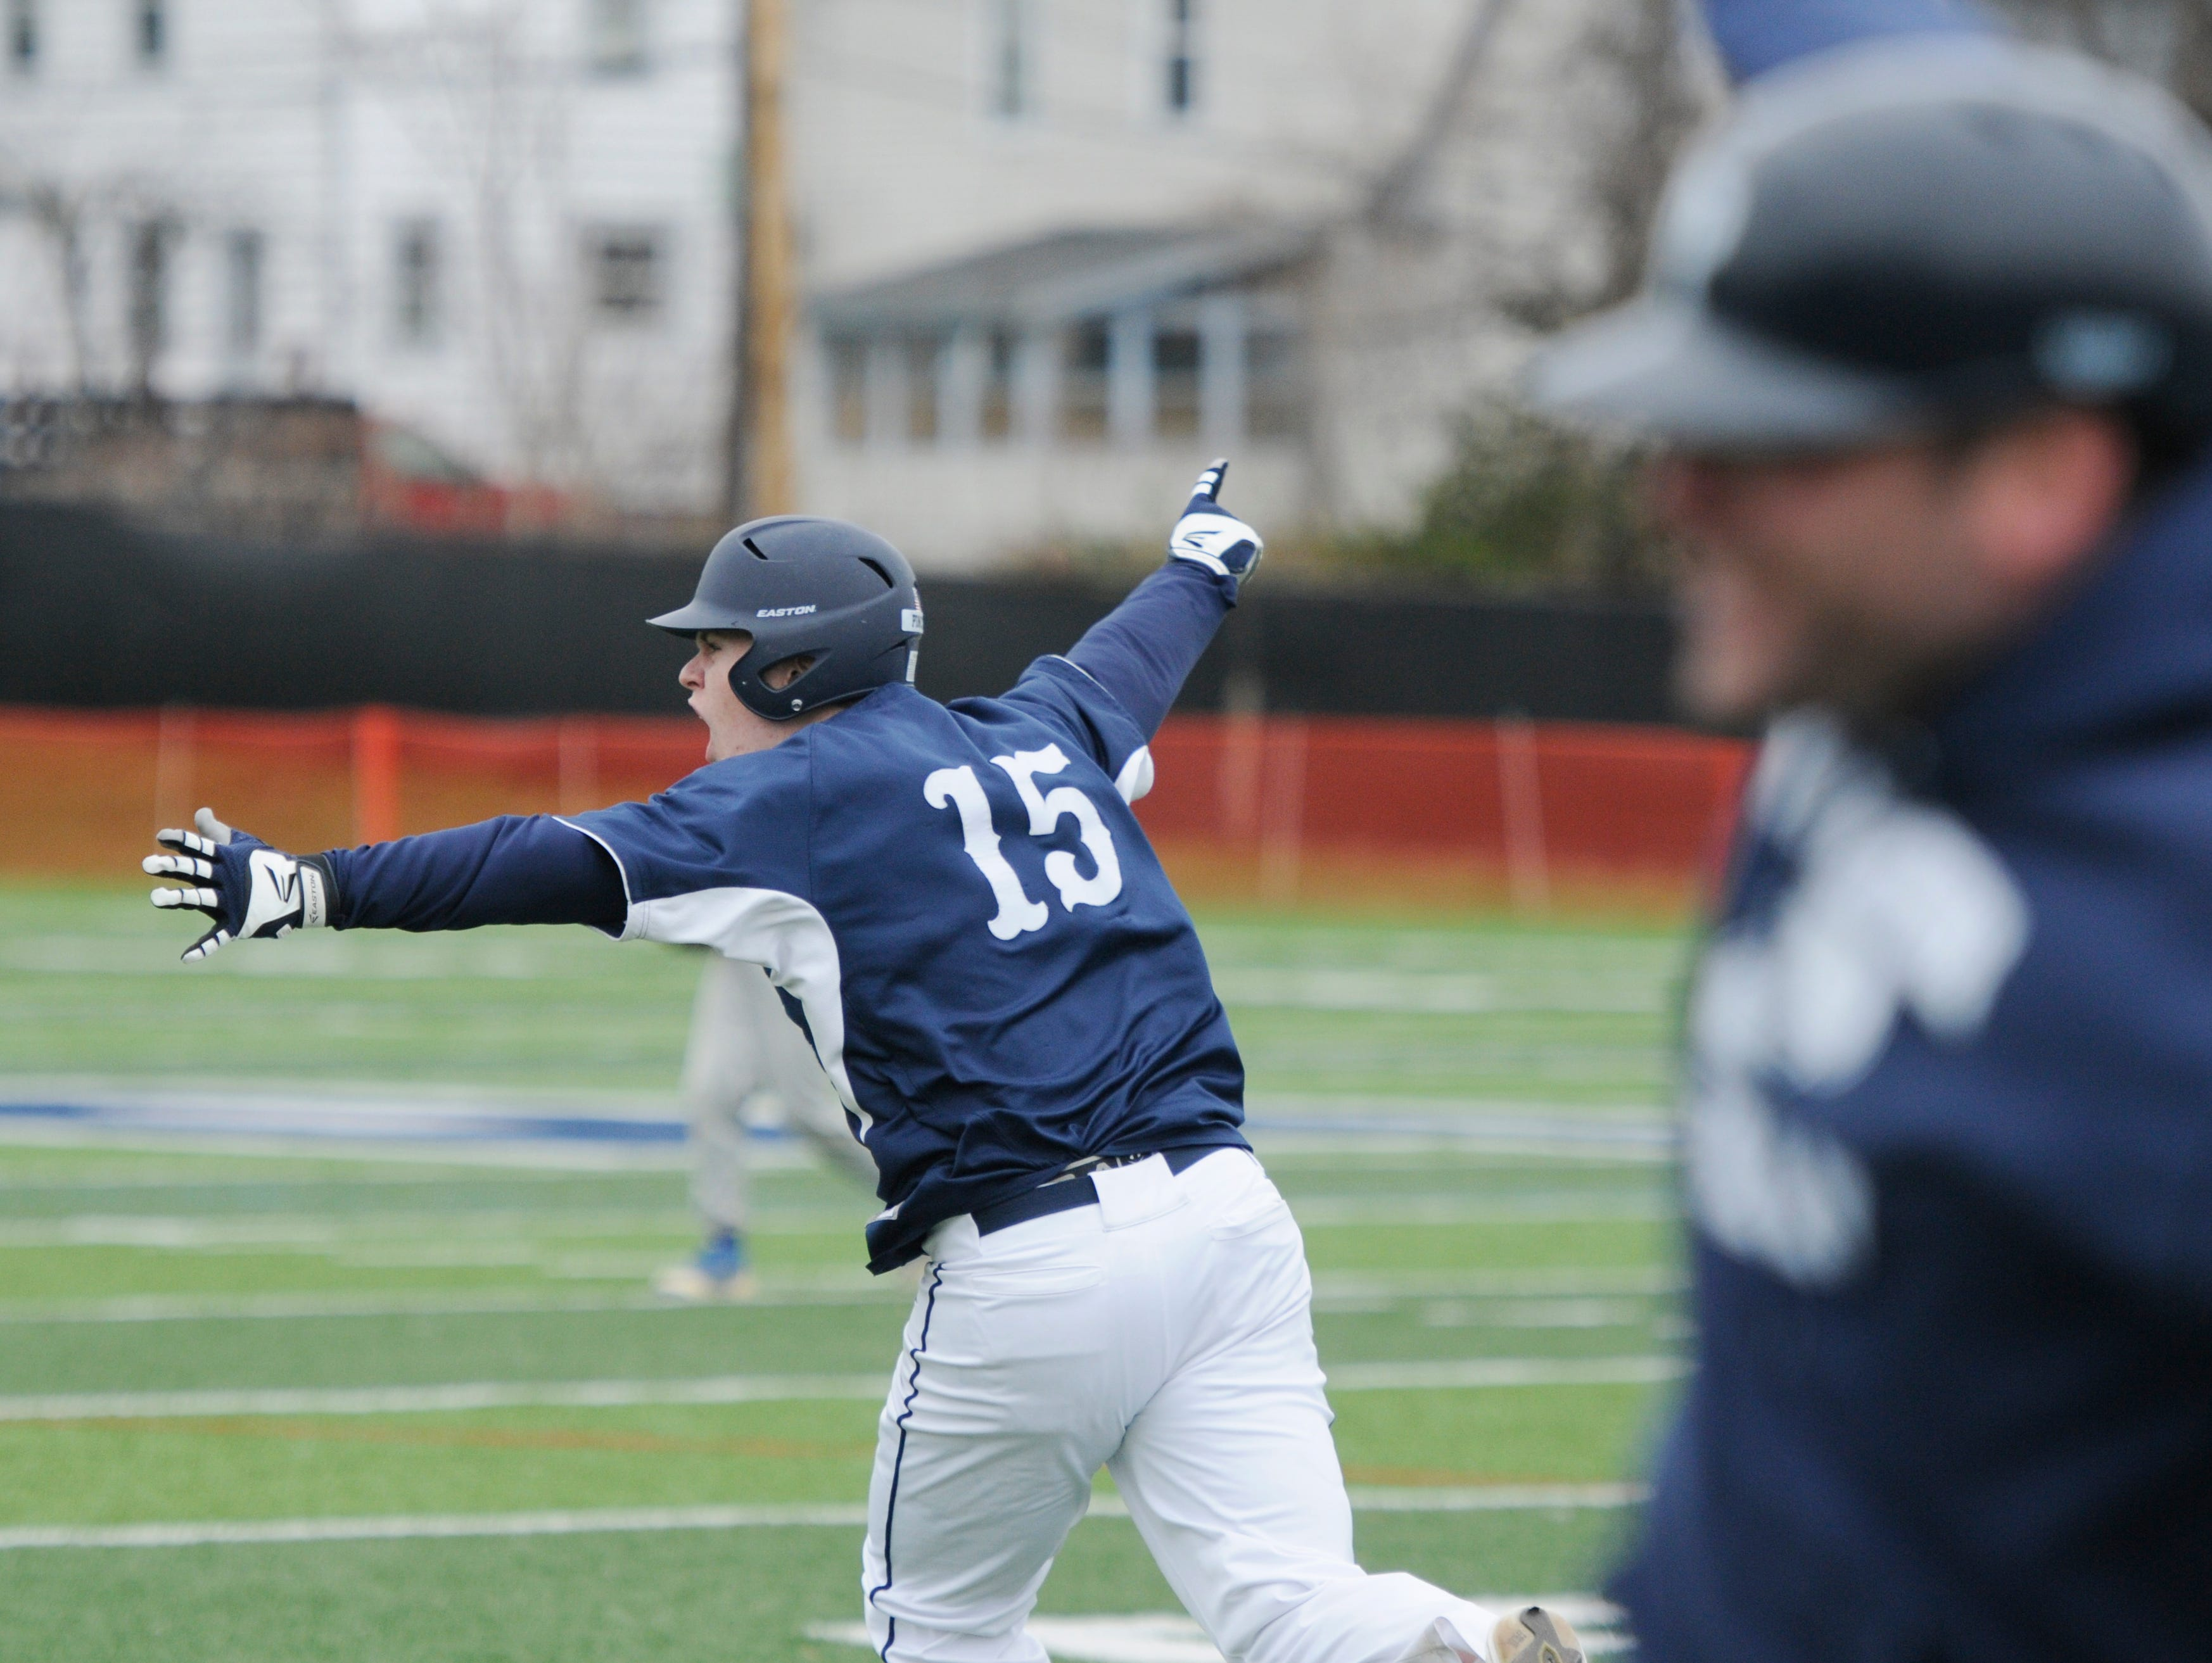 Poughkeepsie's Cullen O'Shea celebrates hitting a grand slam home run in the sixth inning of Saturday's game versus Rhinebeck at Poughkeepsie High School.